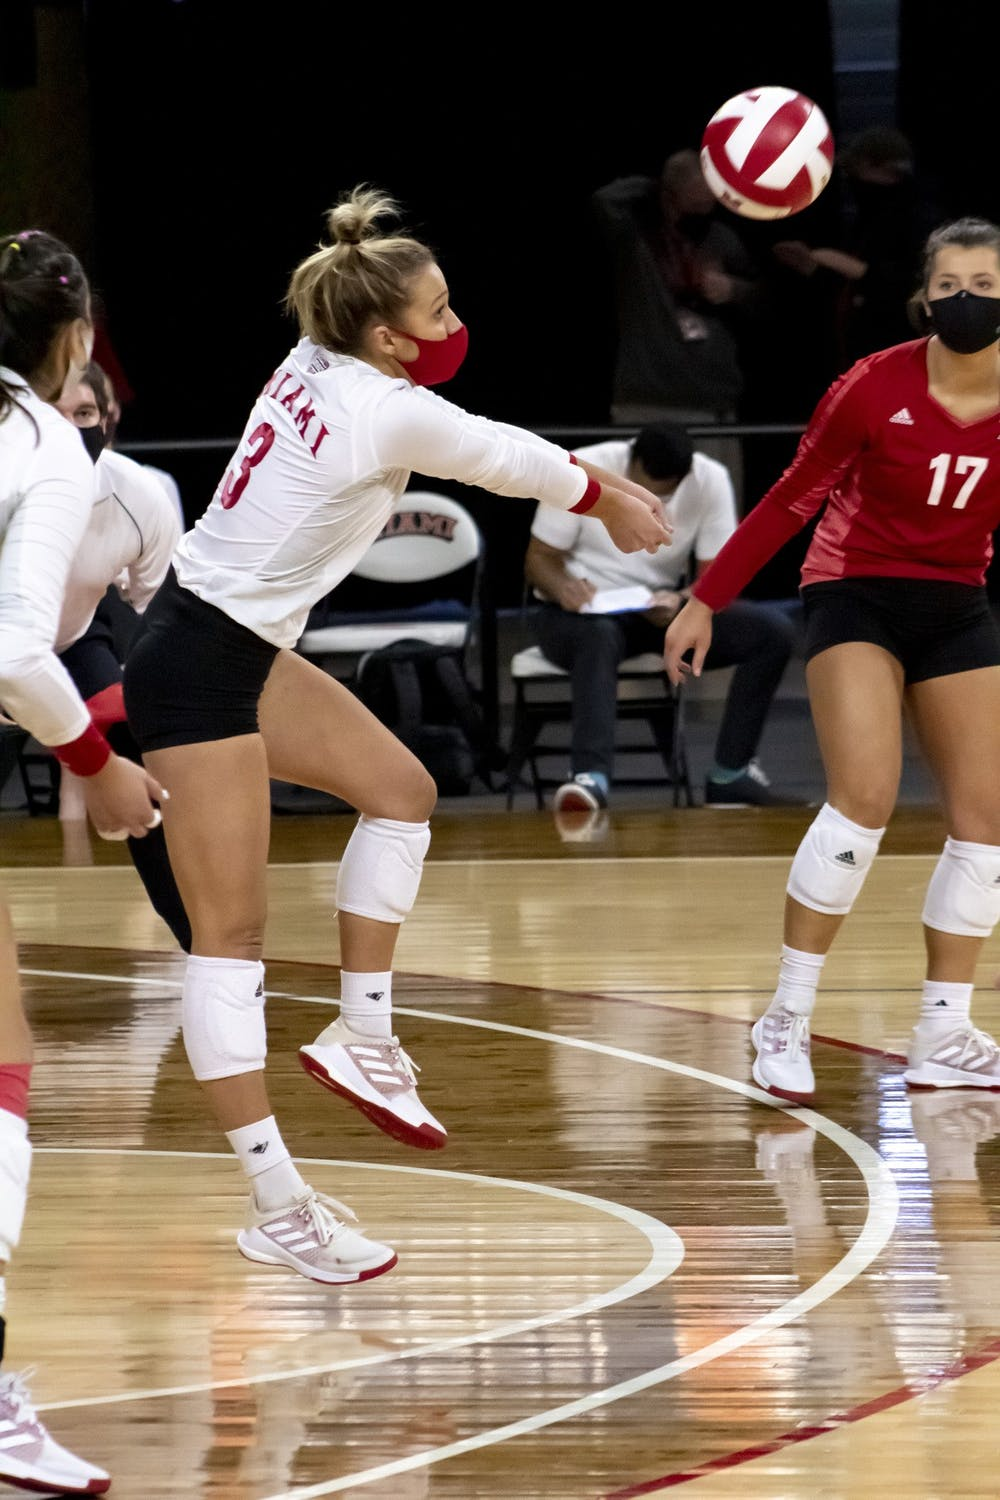 <p>Senior libero Abigail Huser (pictured, in red) recorded a career-high 38 digs in Friday&#x27;s win over Eastern Michigan.</p>